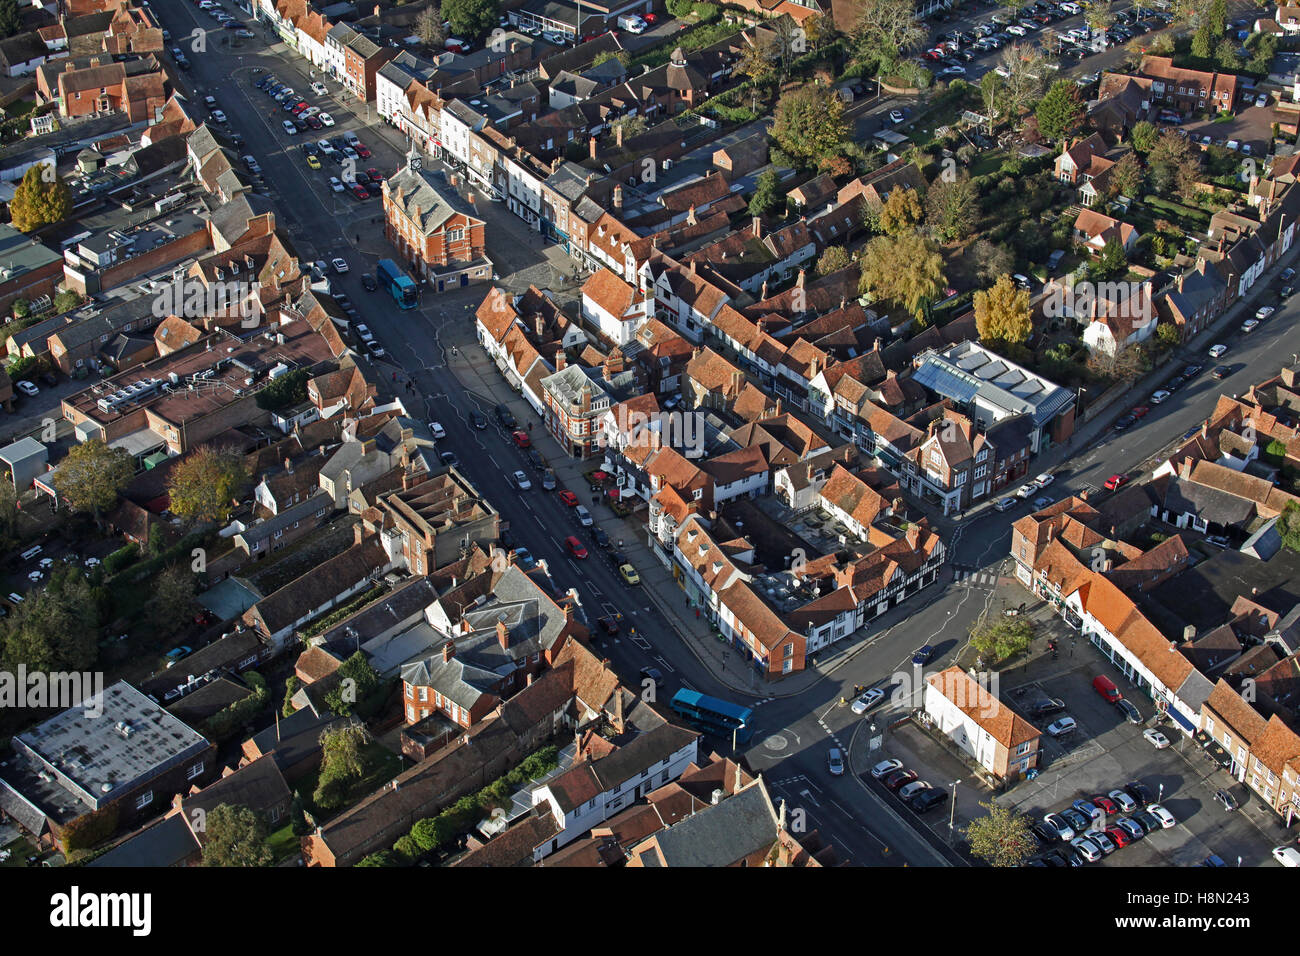 aerial view of Thame town centre, Oxfordshire, UK - Stock Image